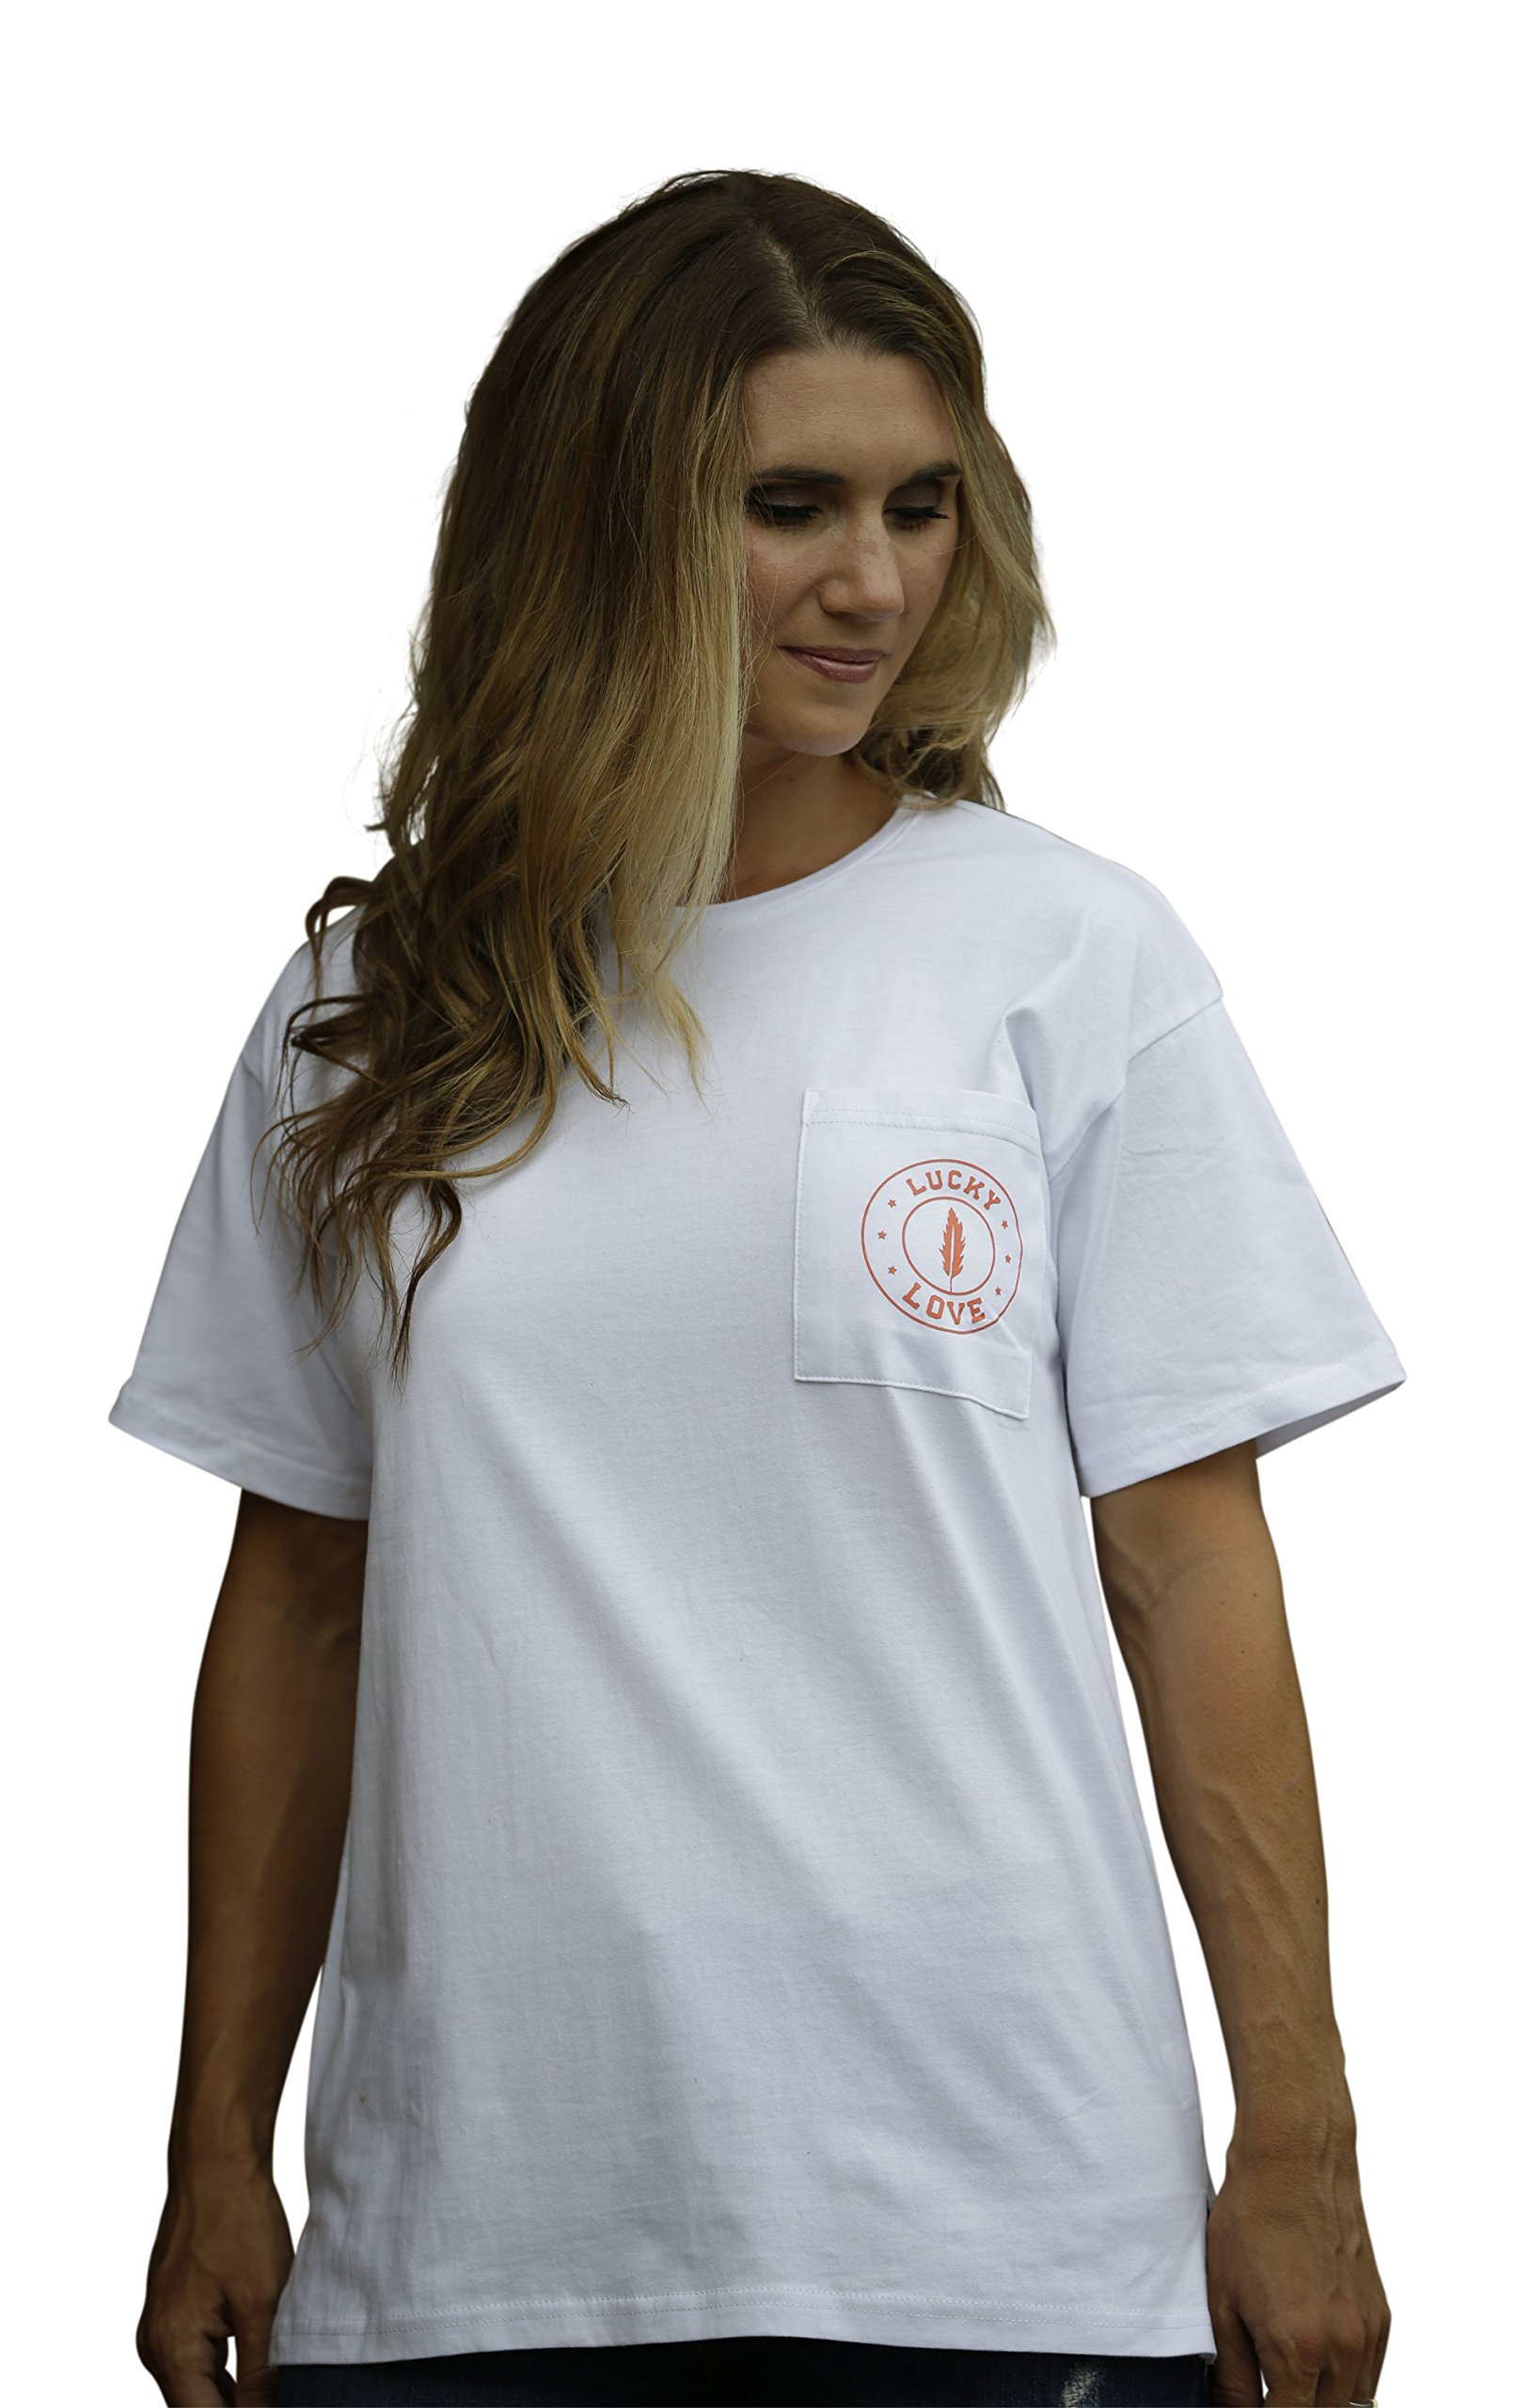 Lucky Love Graphic Long or Short Sleeve T Shirt for Women & Plus Size - Relaxed Fit & Longer Length